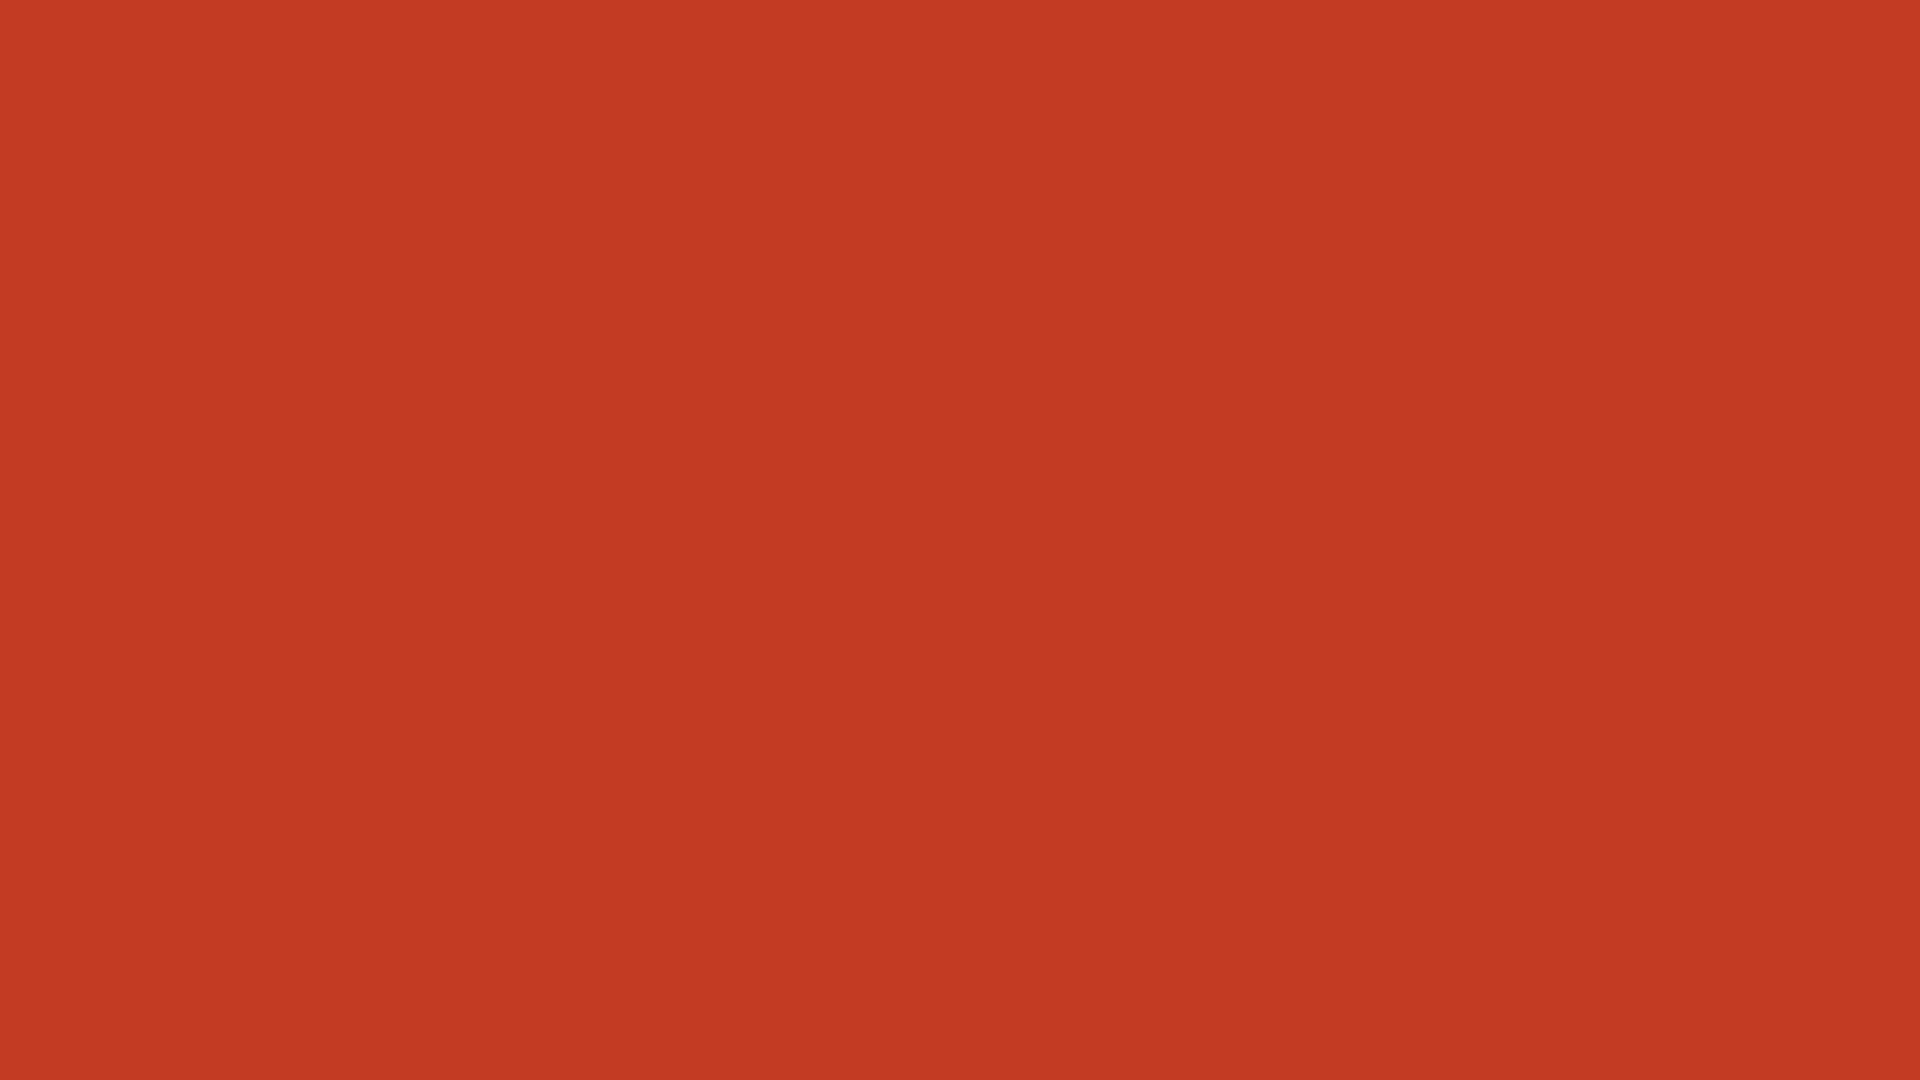 1920x1080 Dark Pastel Red Solid Color Background